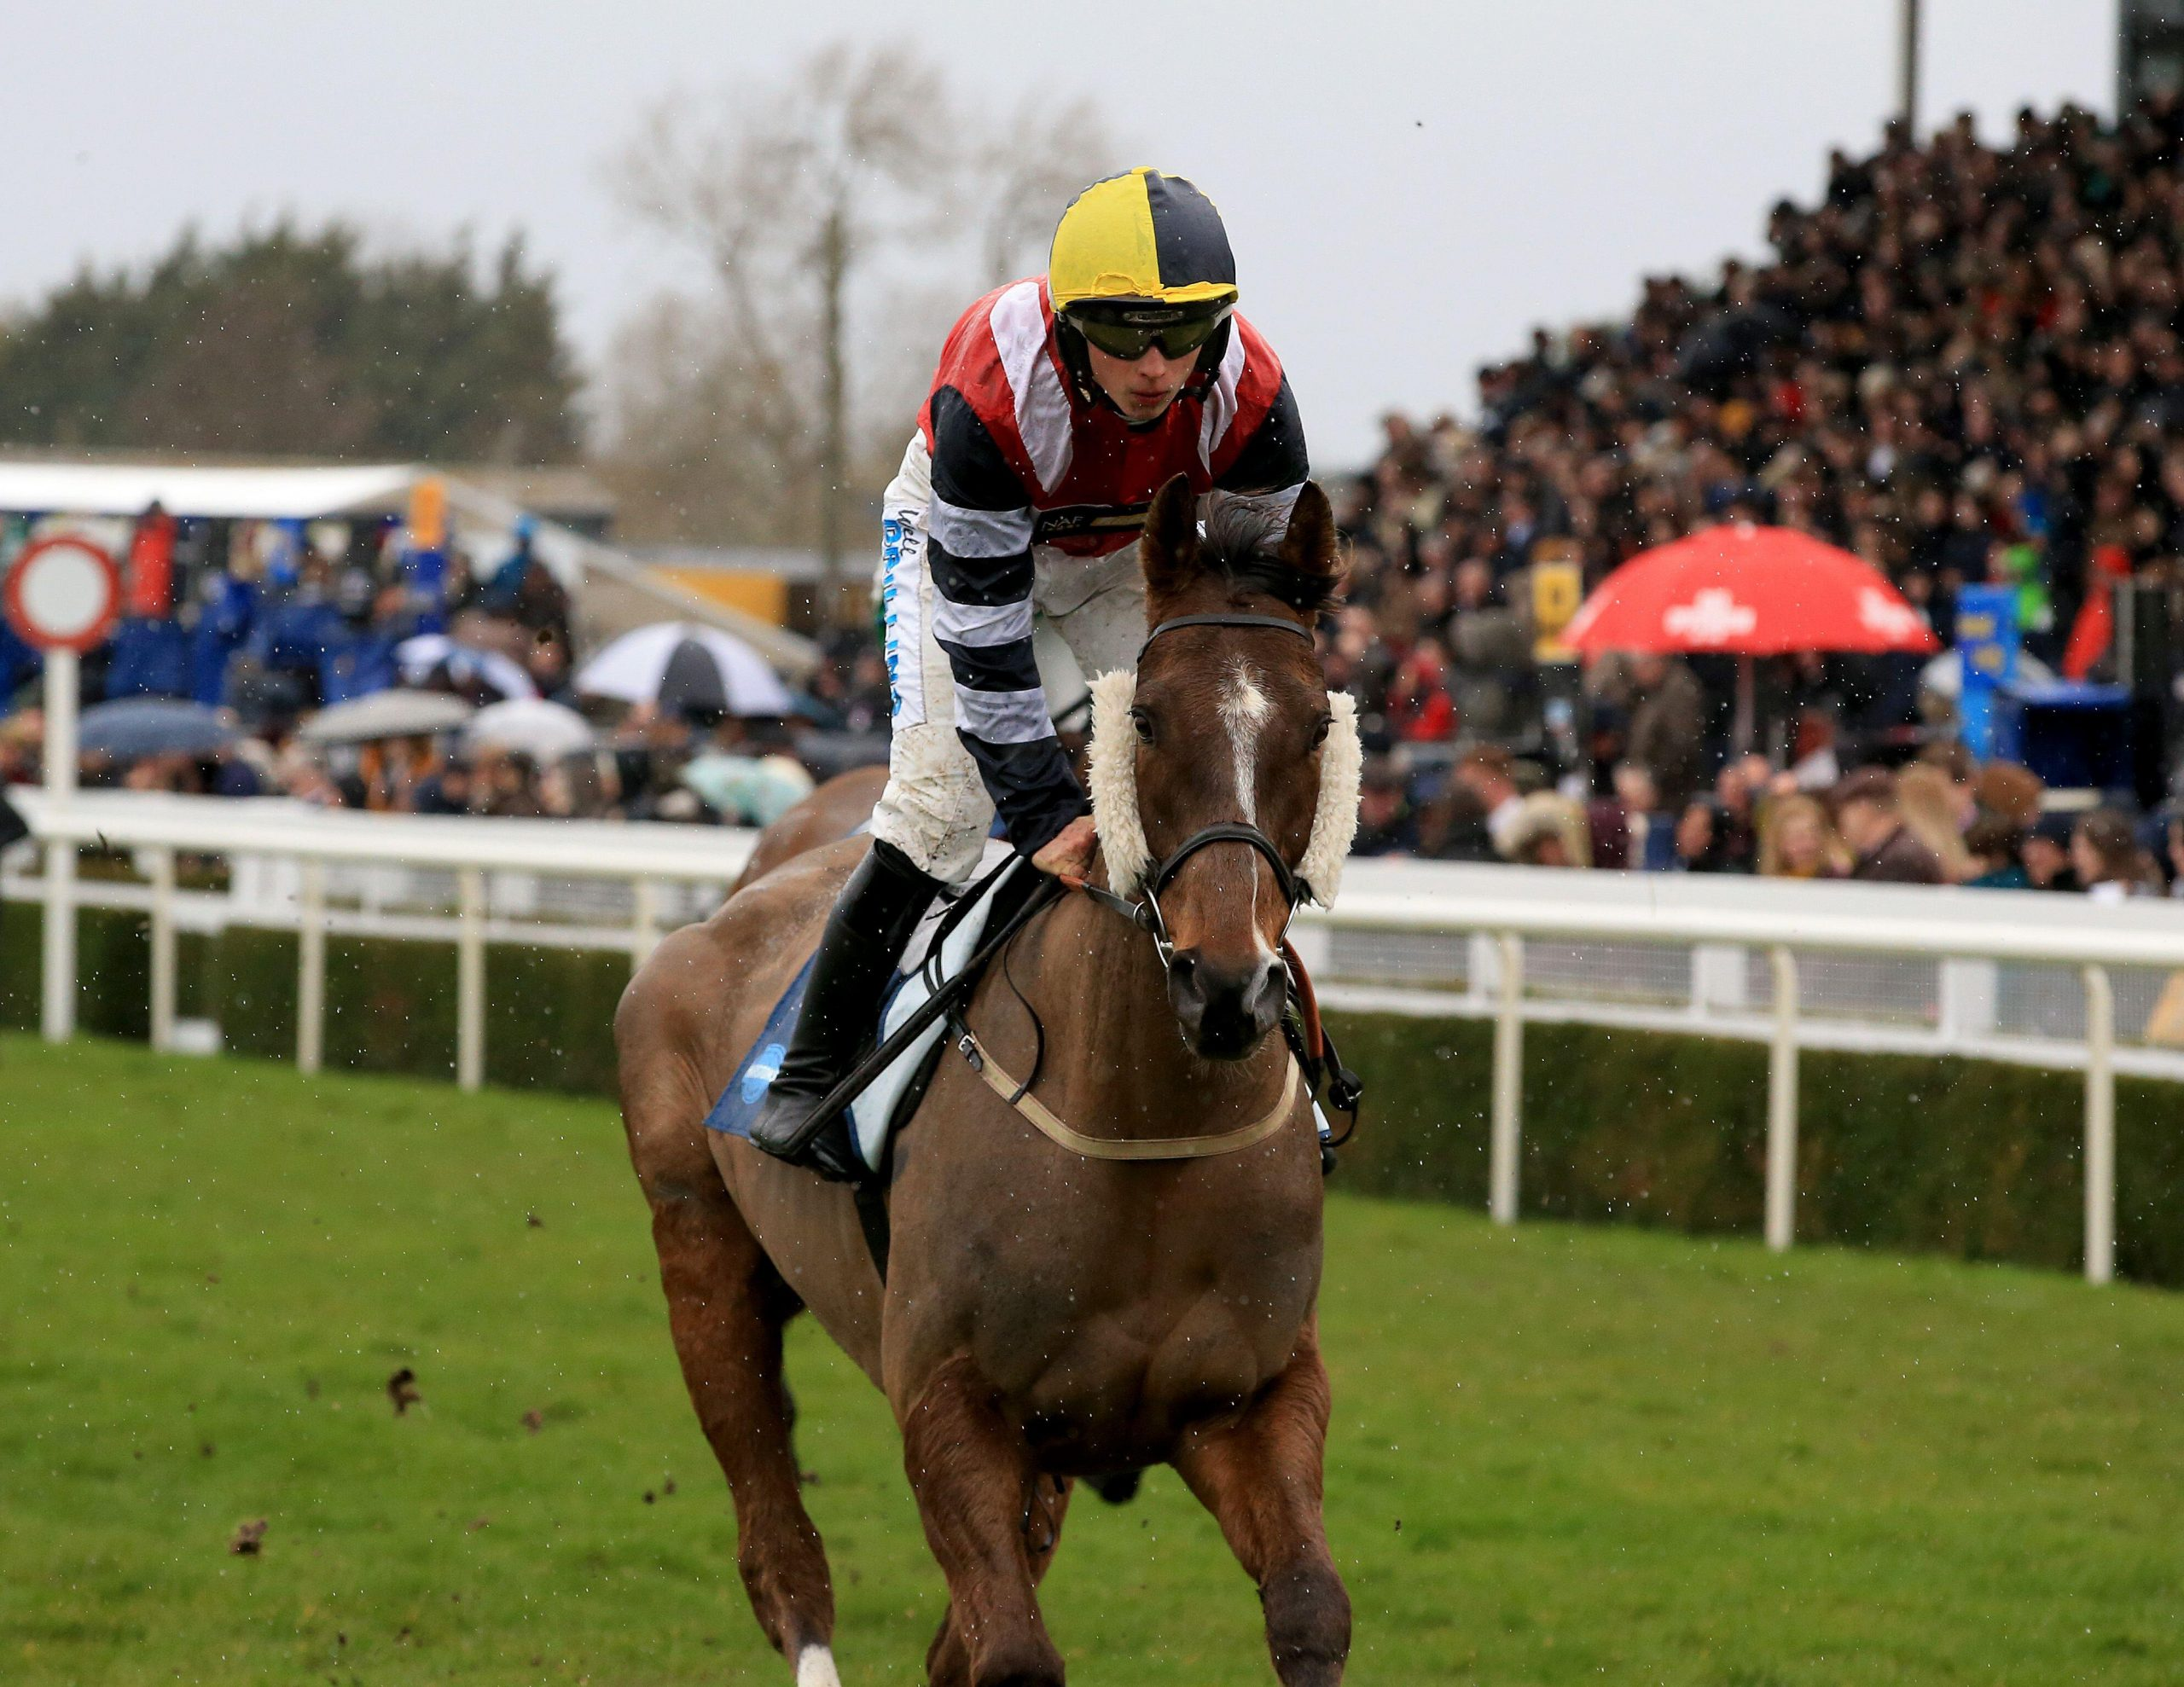 2EM3PP7 File photo dated 16-03-2019 of Potters Corner ridden by James Bowen during the Marstons 61 Deep Midlands Grand National race at Uttoxeter Racecourse. Issue date: Wednesday February 24, 2021.